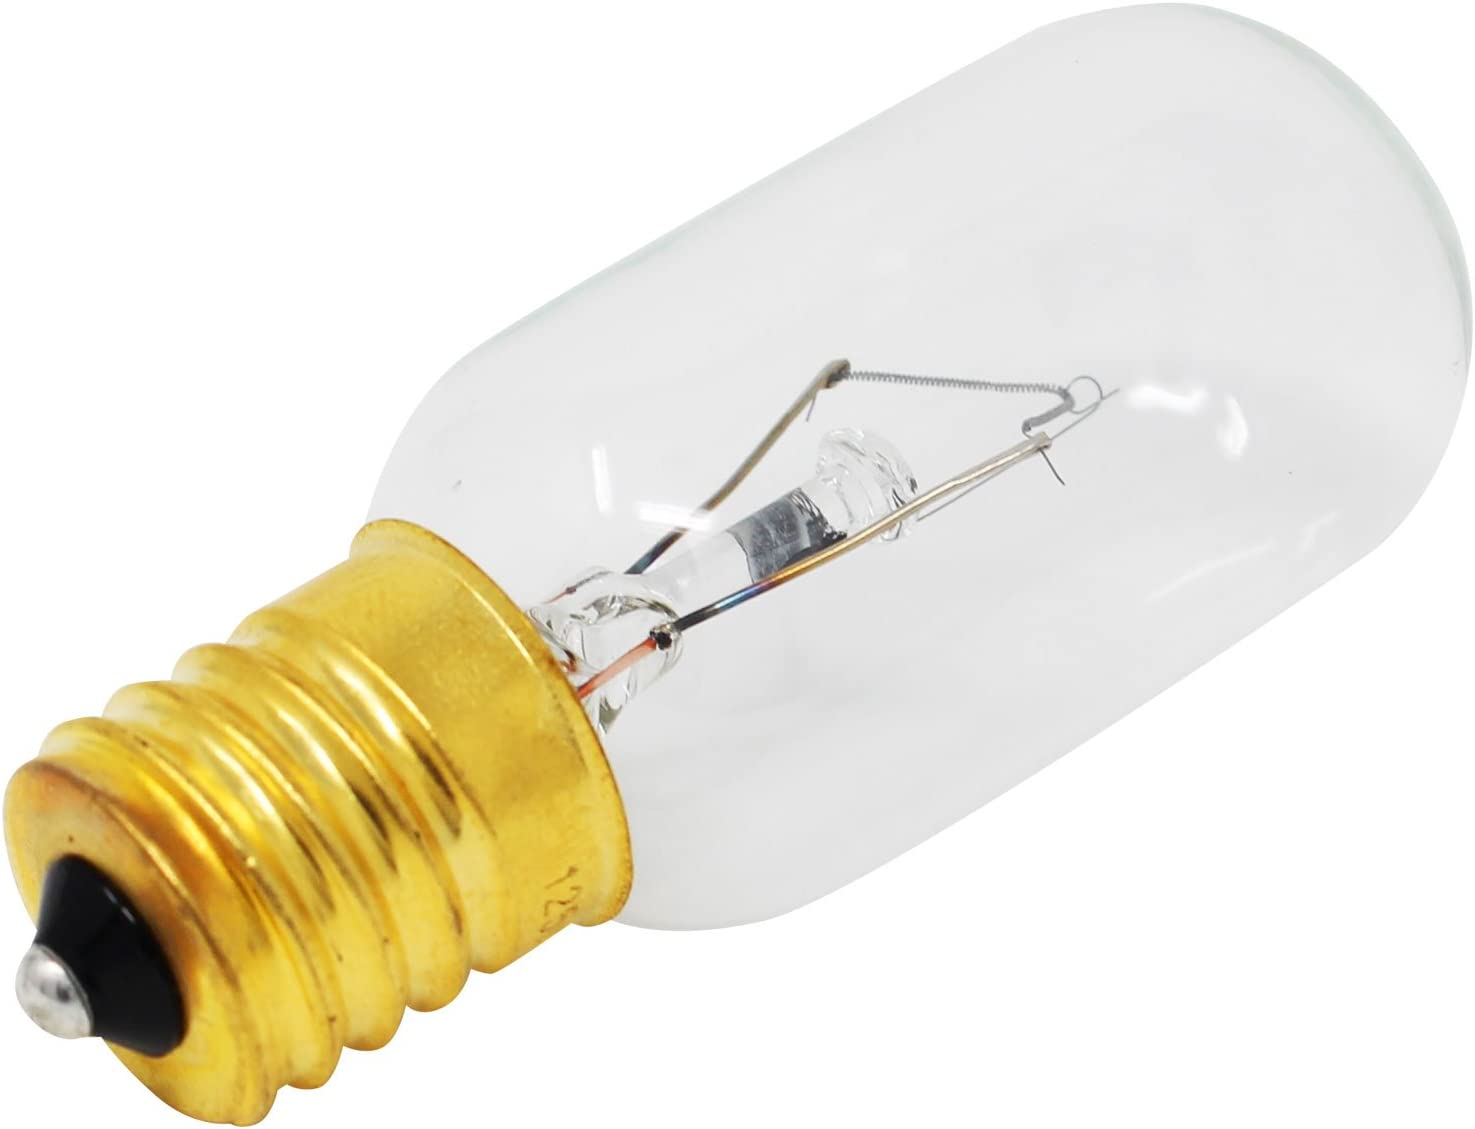 2-Pack Replacement Light Bulb for Kenmore//Sears 72180414500 Microwave Compatible Kenmore//Sears 6912W1Z004B Light Bulb